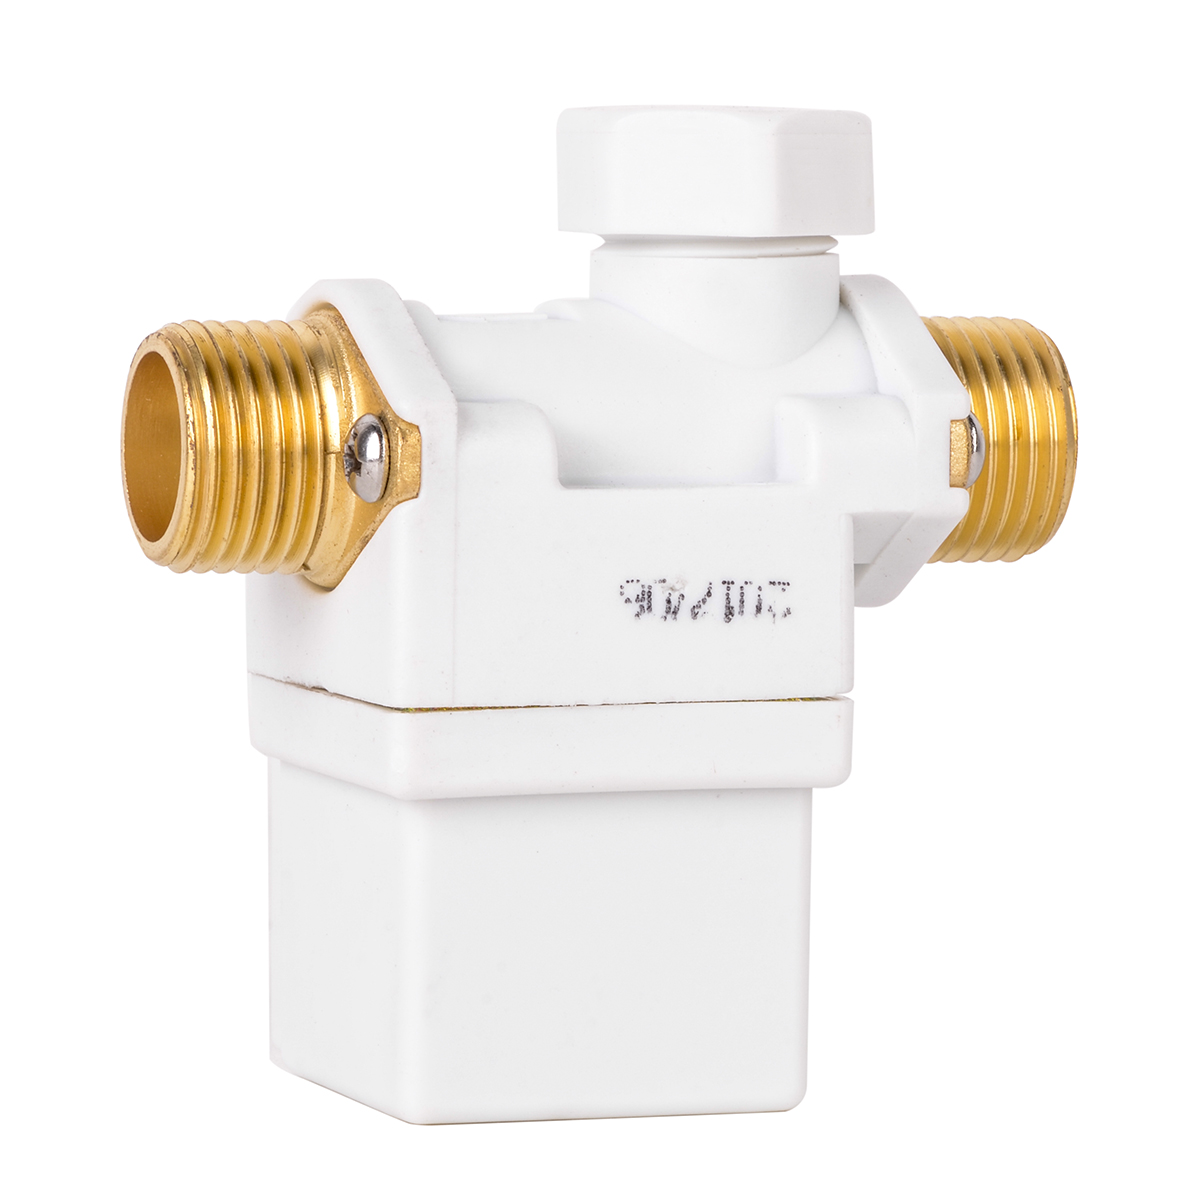 1pc-new-practical-electric-solenoid-valve-ac-220v-water-air-n-c-normally-closed-fontb0-b-font-fontb0